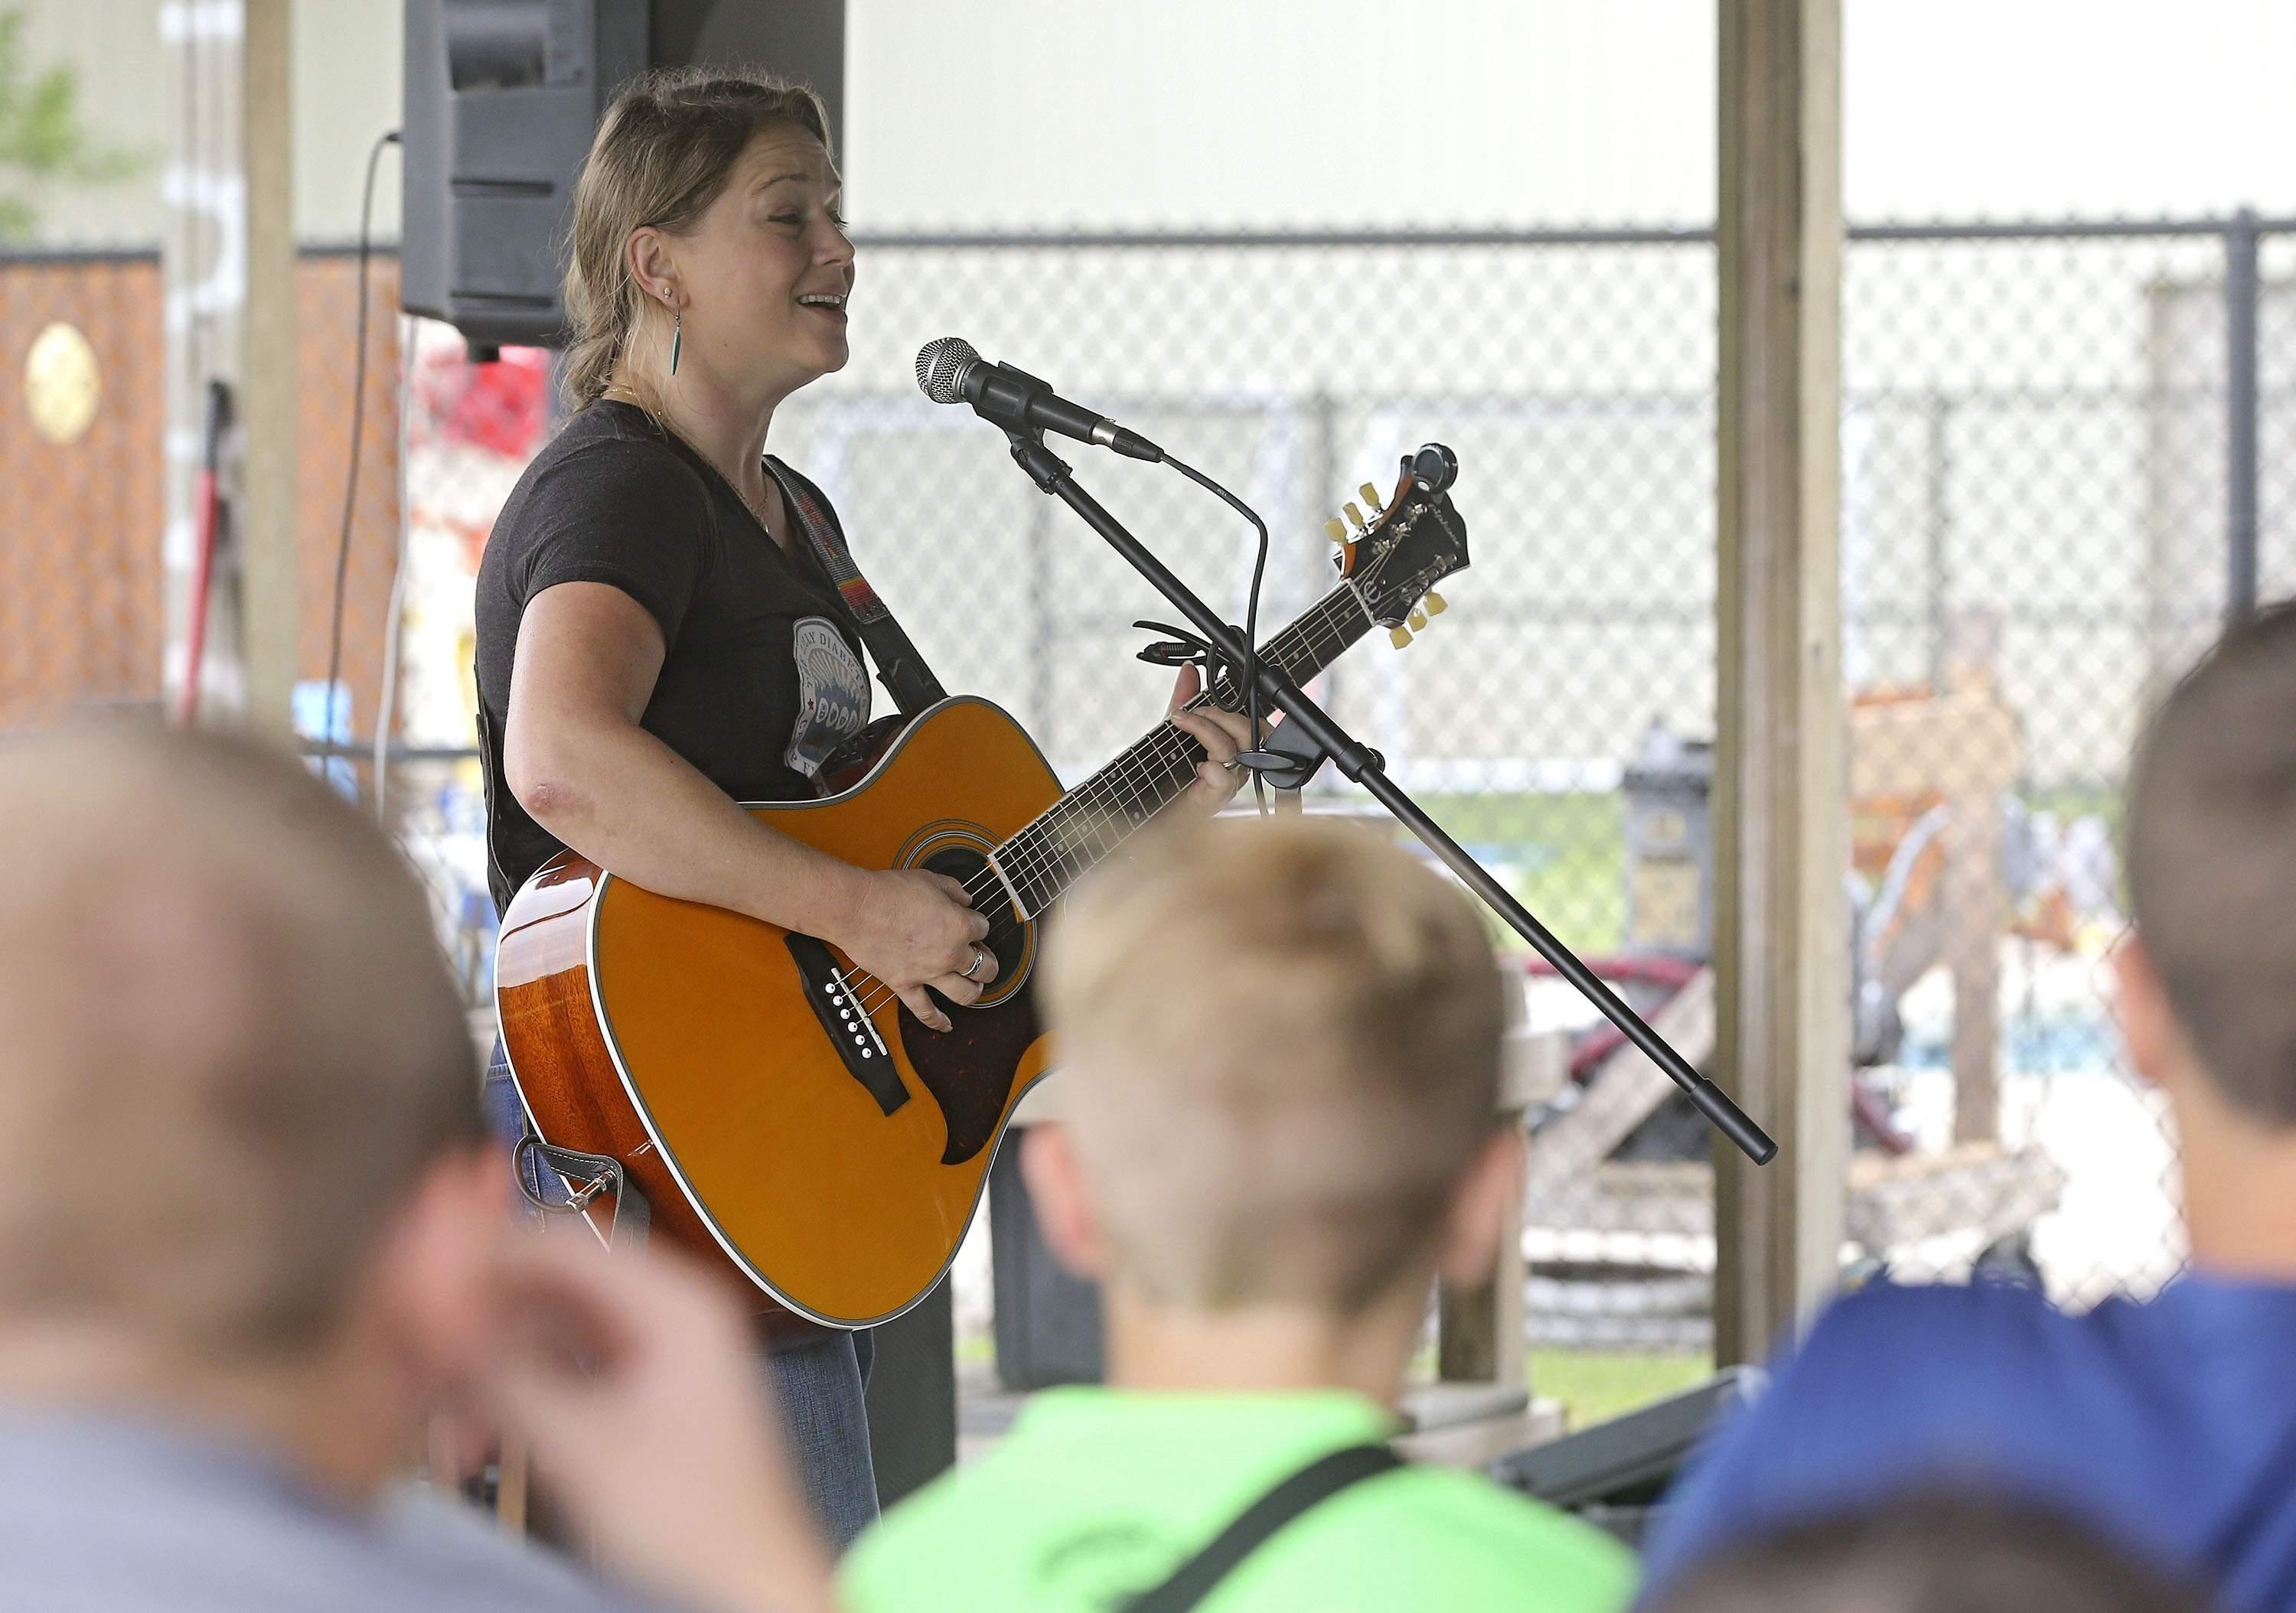 'american Idol' Finalist Crystal Bowersox Shares Positive Message, Songs At Camp Tanager